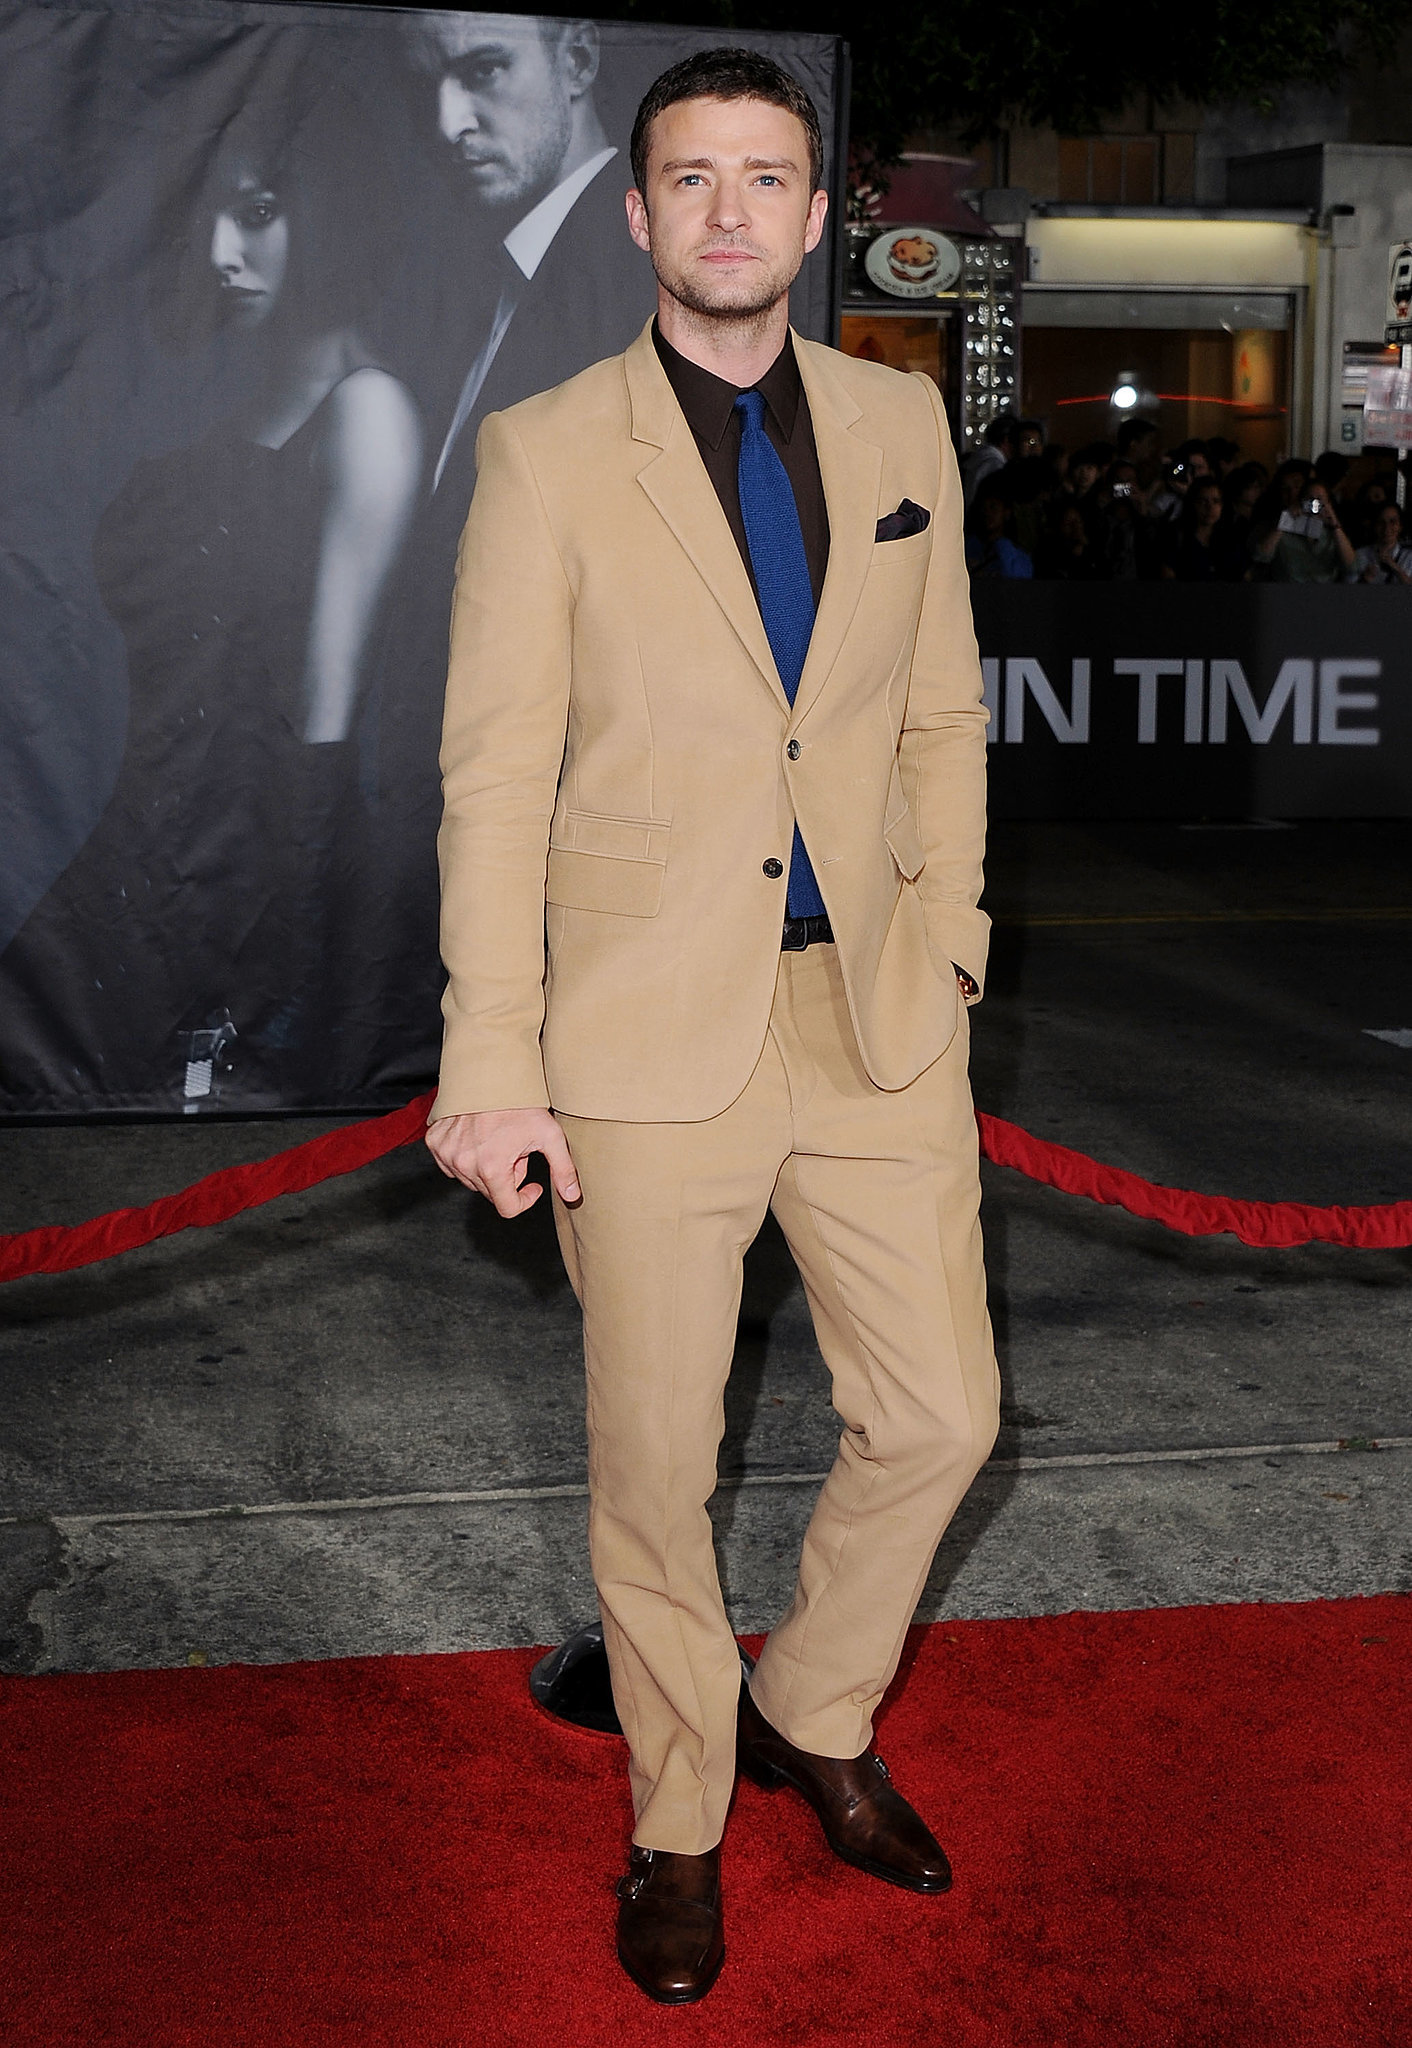 Justin showed off a risky color combo at the In Time premiere in October 2011 — his camel-colored suit, brown shirt, and navy tie w